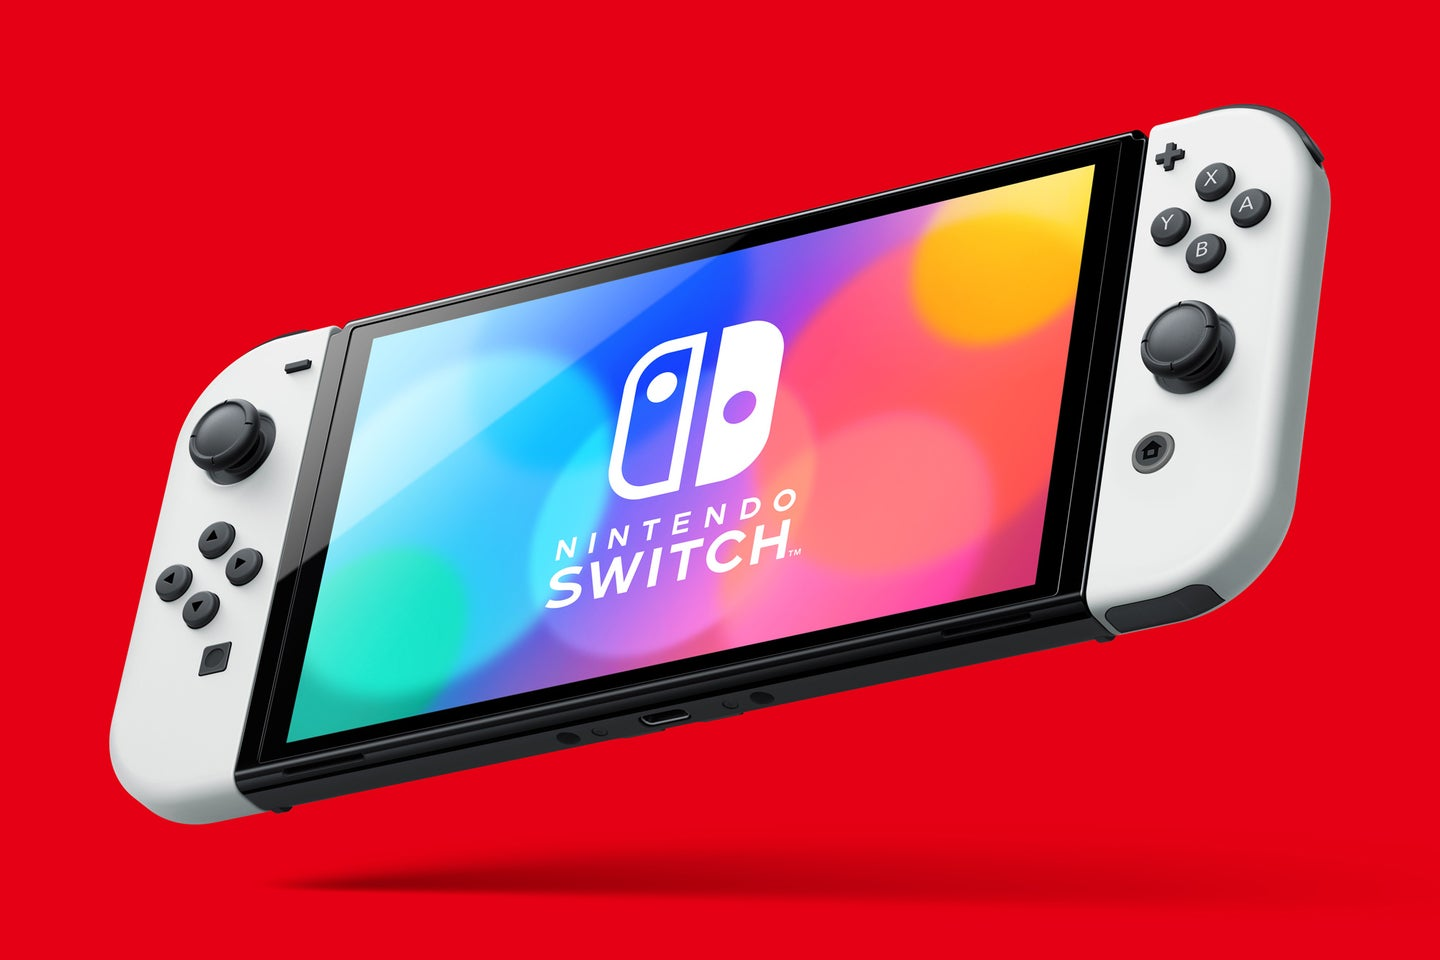 Nintendo Switch OLED console on red background